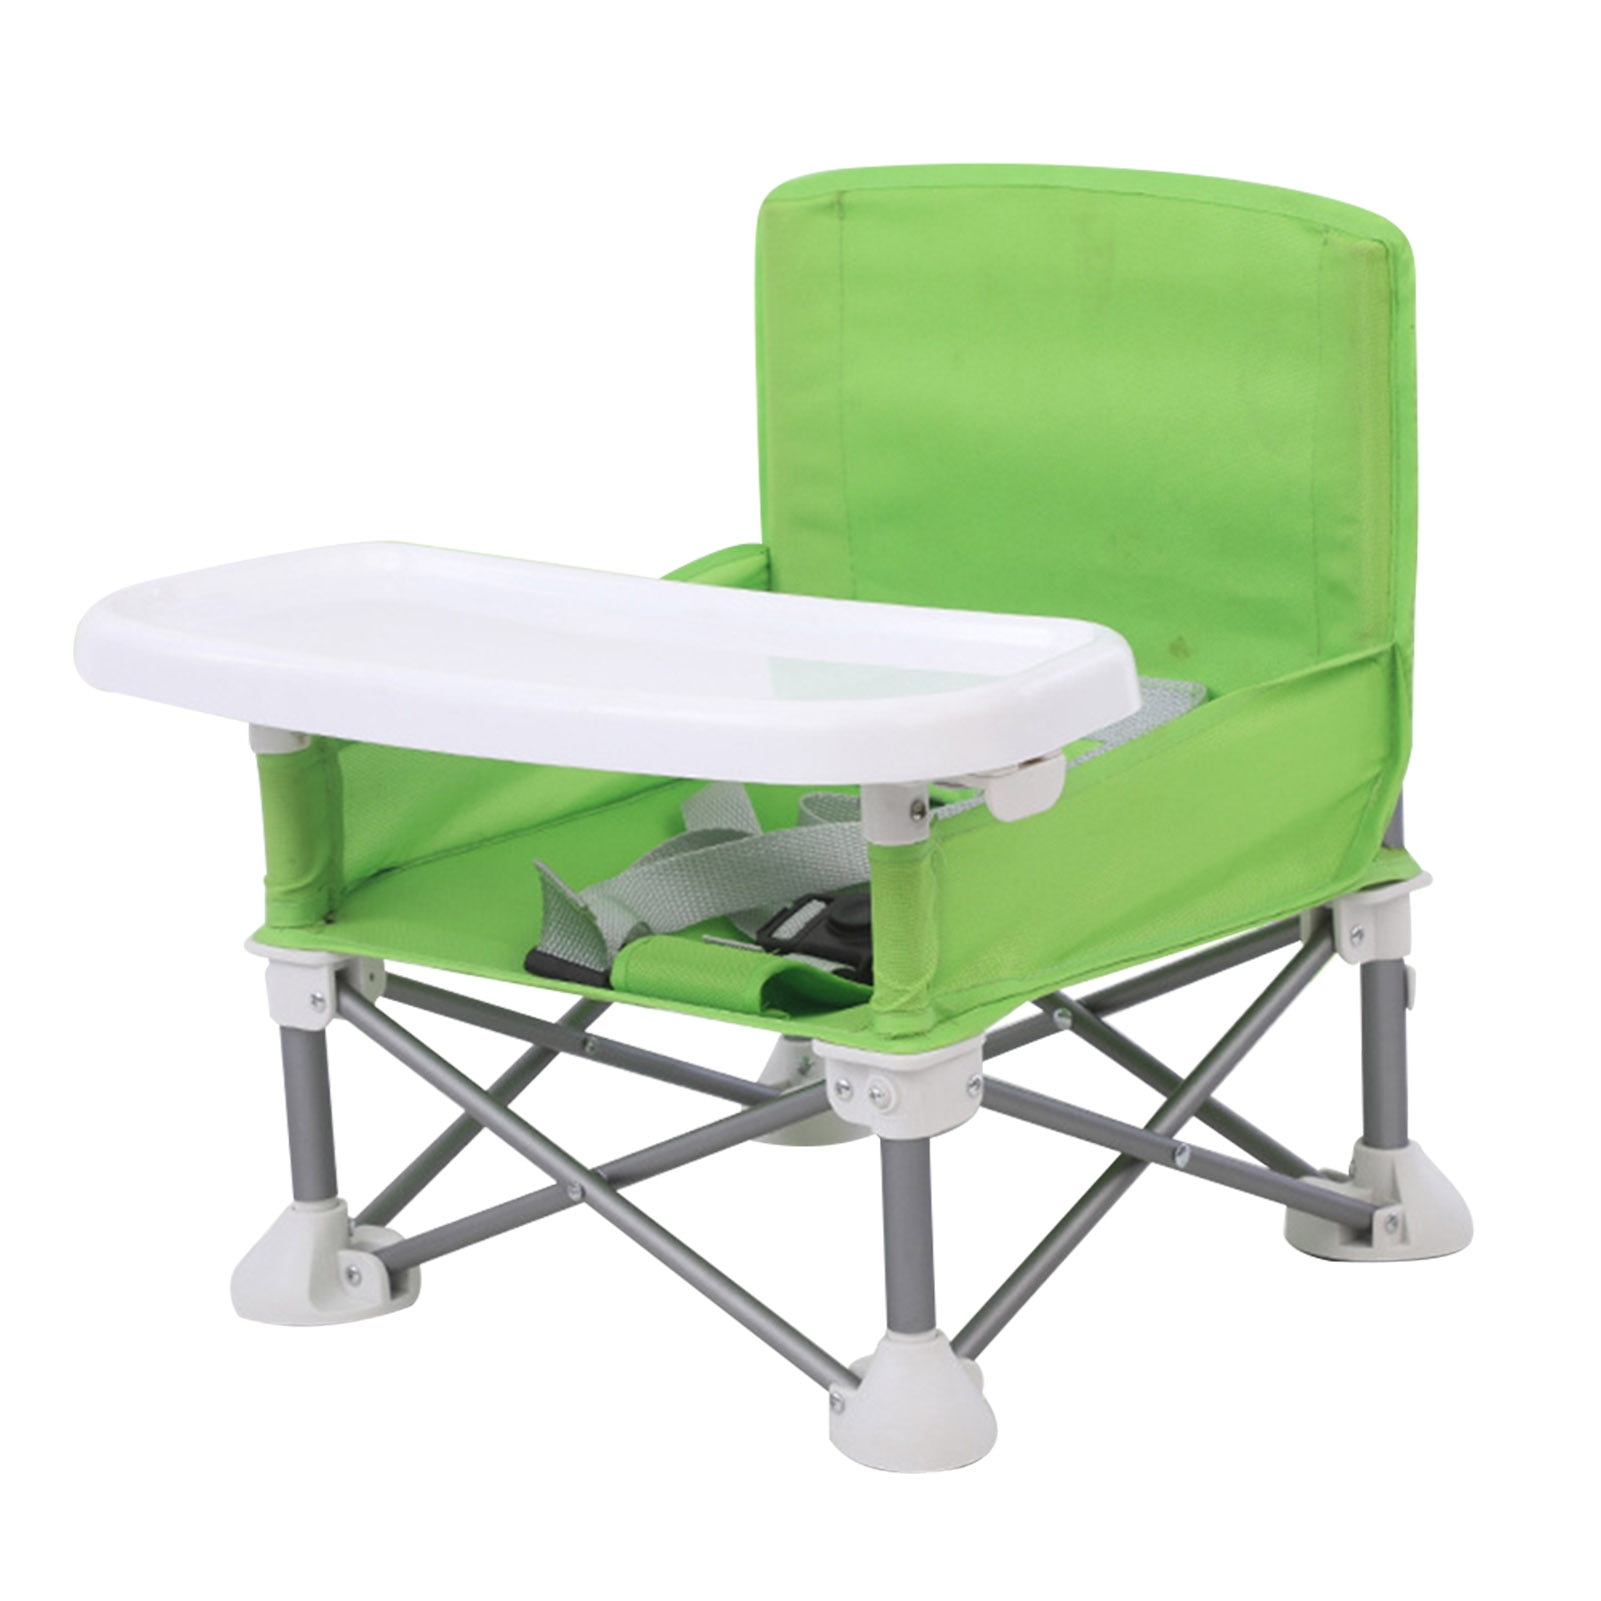 Camping Baby Booster Seat Children Dining Chair Travel With Tray Detachable Portable Foldable Aluminum Alloy Eating Beach Lawn